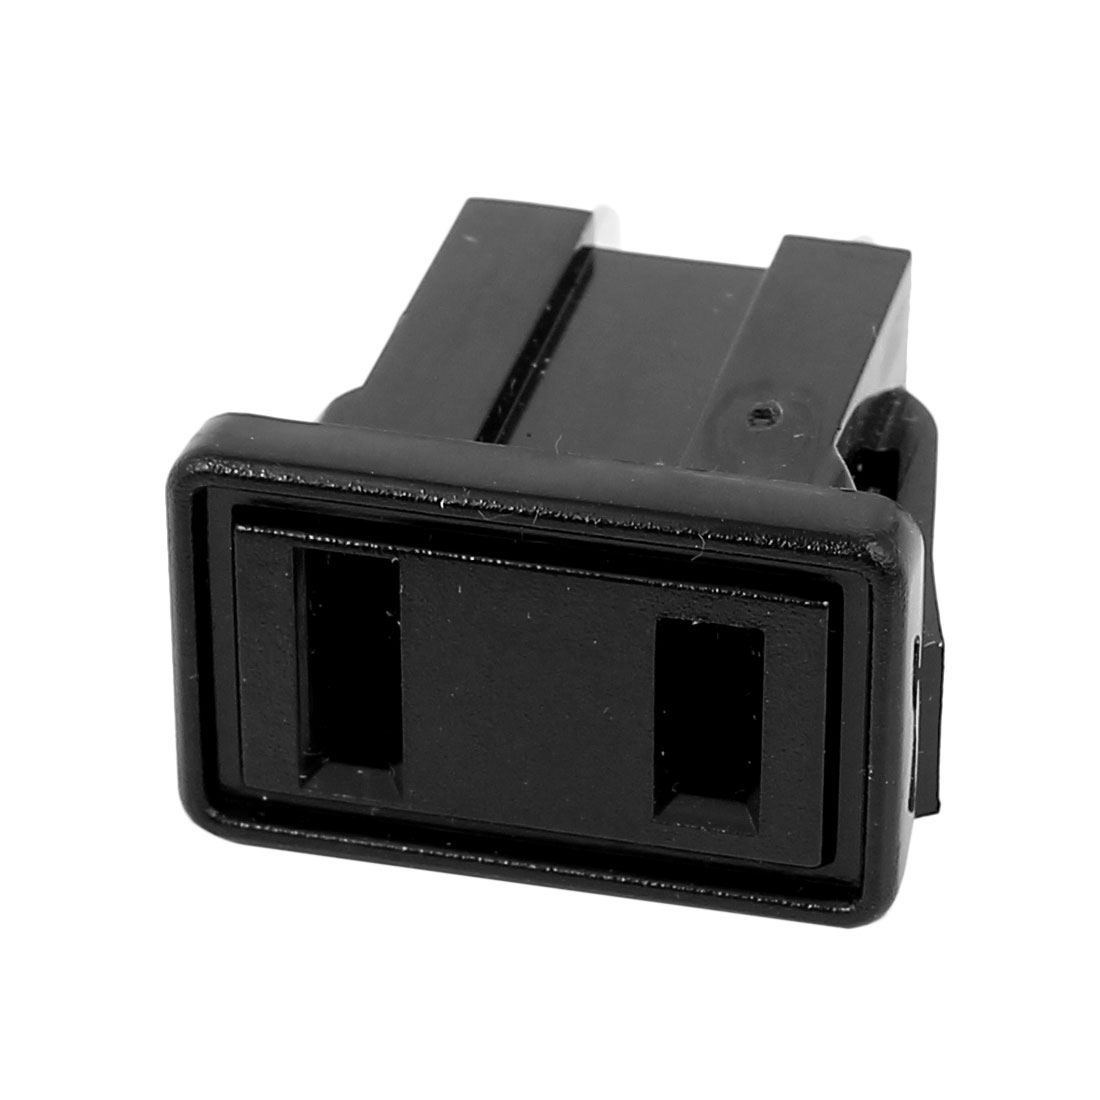 AC 125V 15A 2 Poles IEC320 C9 Power Inlet Socket Connector Anti Electric-shock